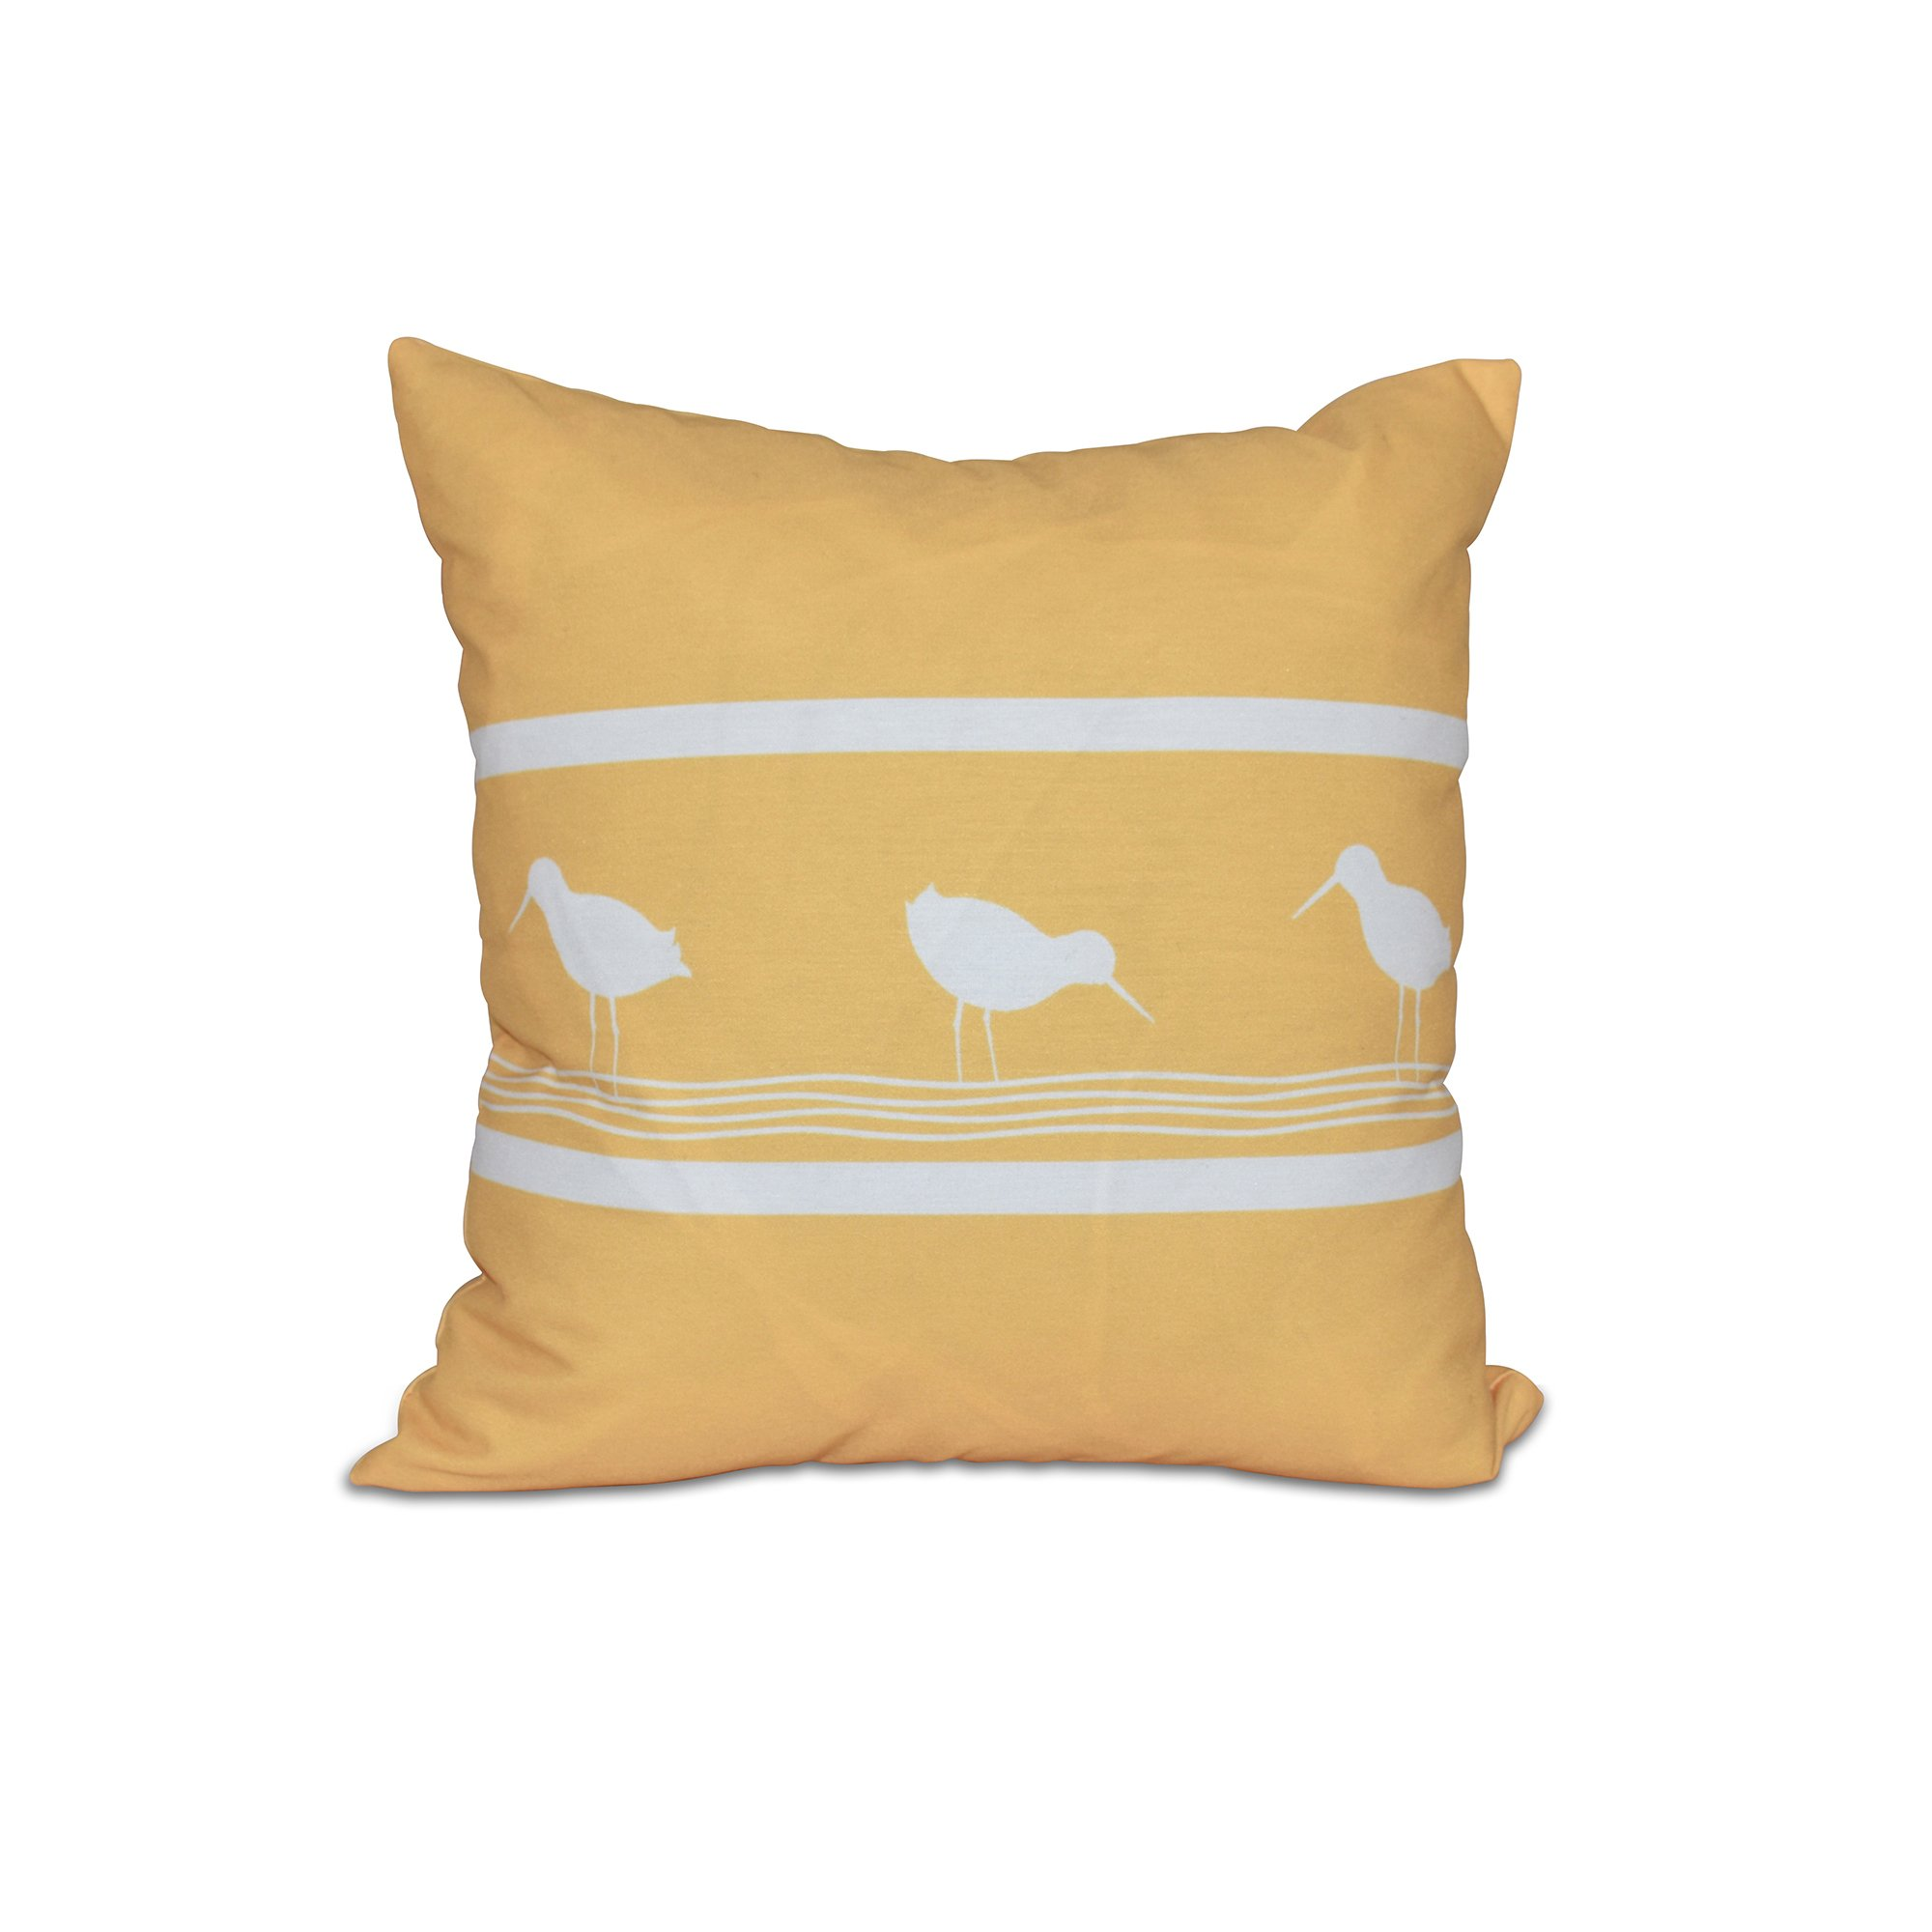 E by design 20 x 20-inch, Birdwalk, Animal Print Pillow, Yellow